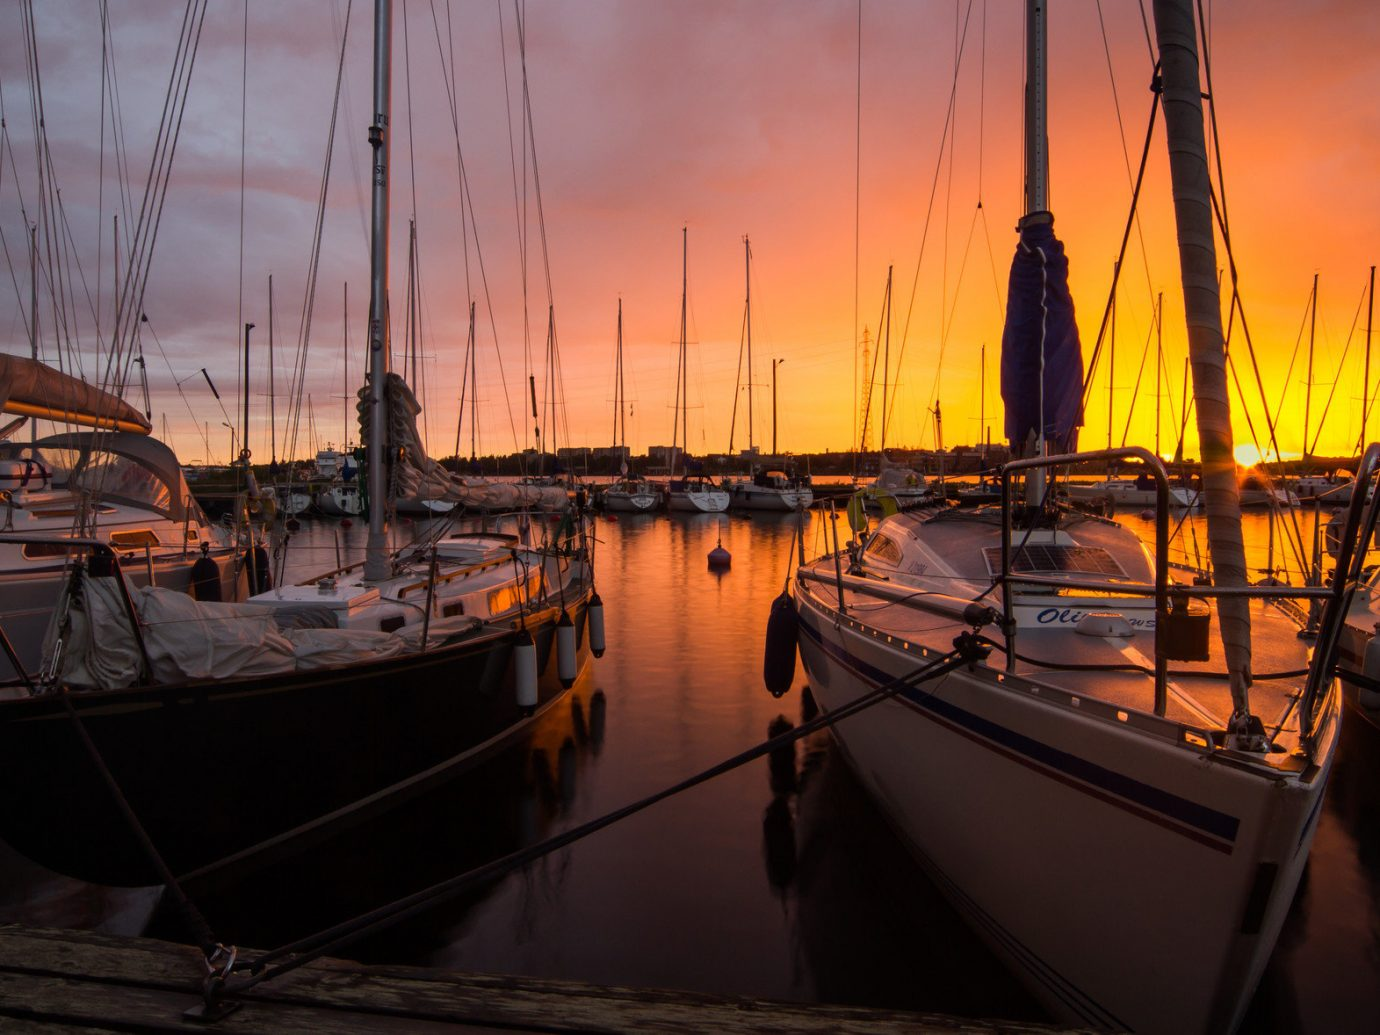 Trip Ideas Boat water sky outdoor reflection docked Sunset scene vehicle Harbor evening dock marina morning pier sailboat watercraft Sea dusk cloudy tied several